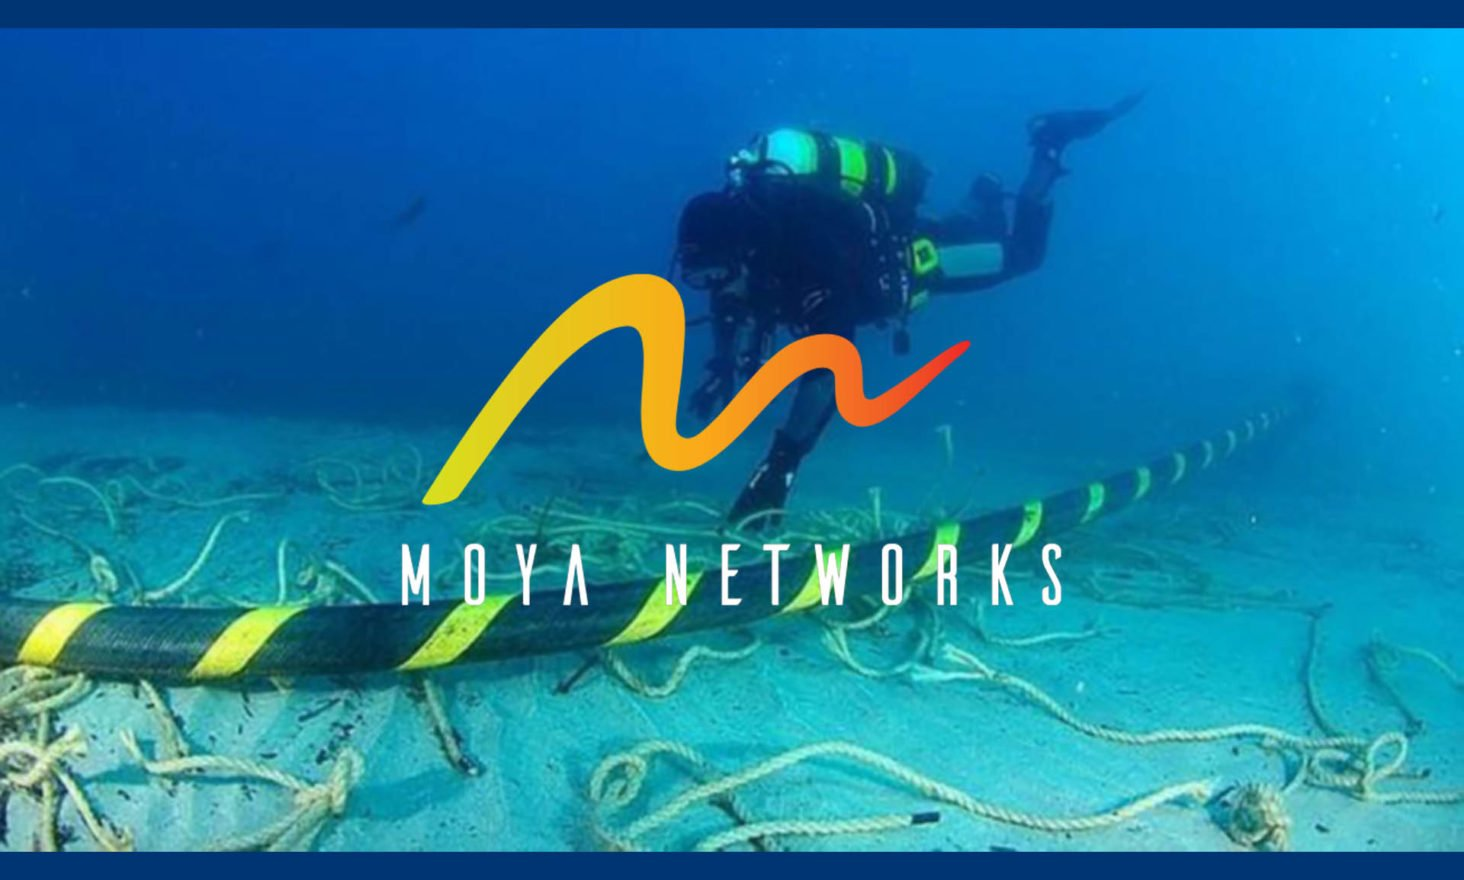 Moya Networks - Africa's Underwater Internet Cable Revolution in the Works via Blockchain?